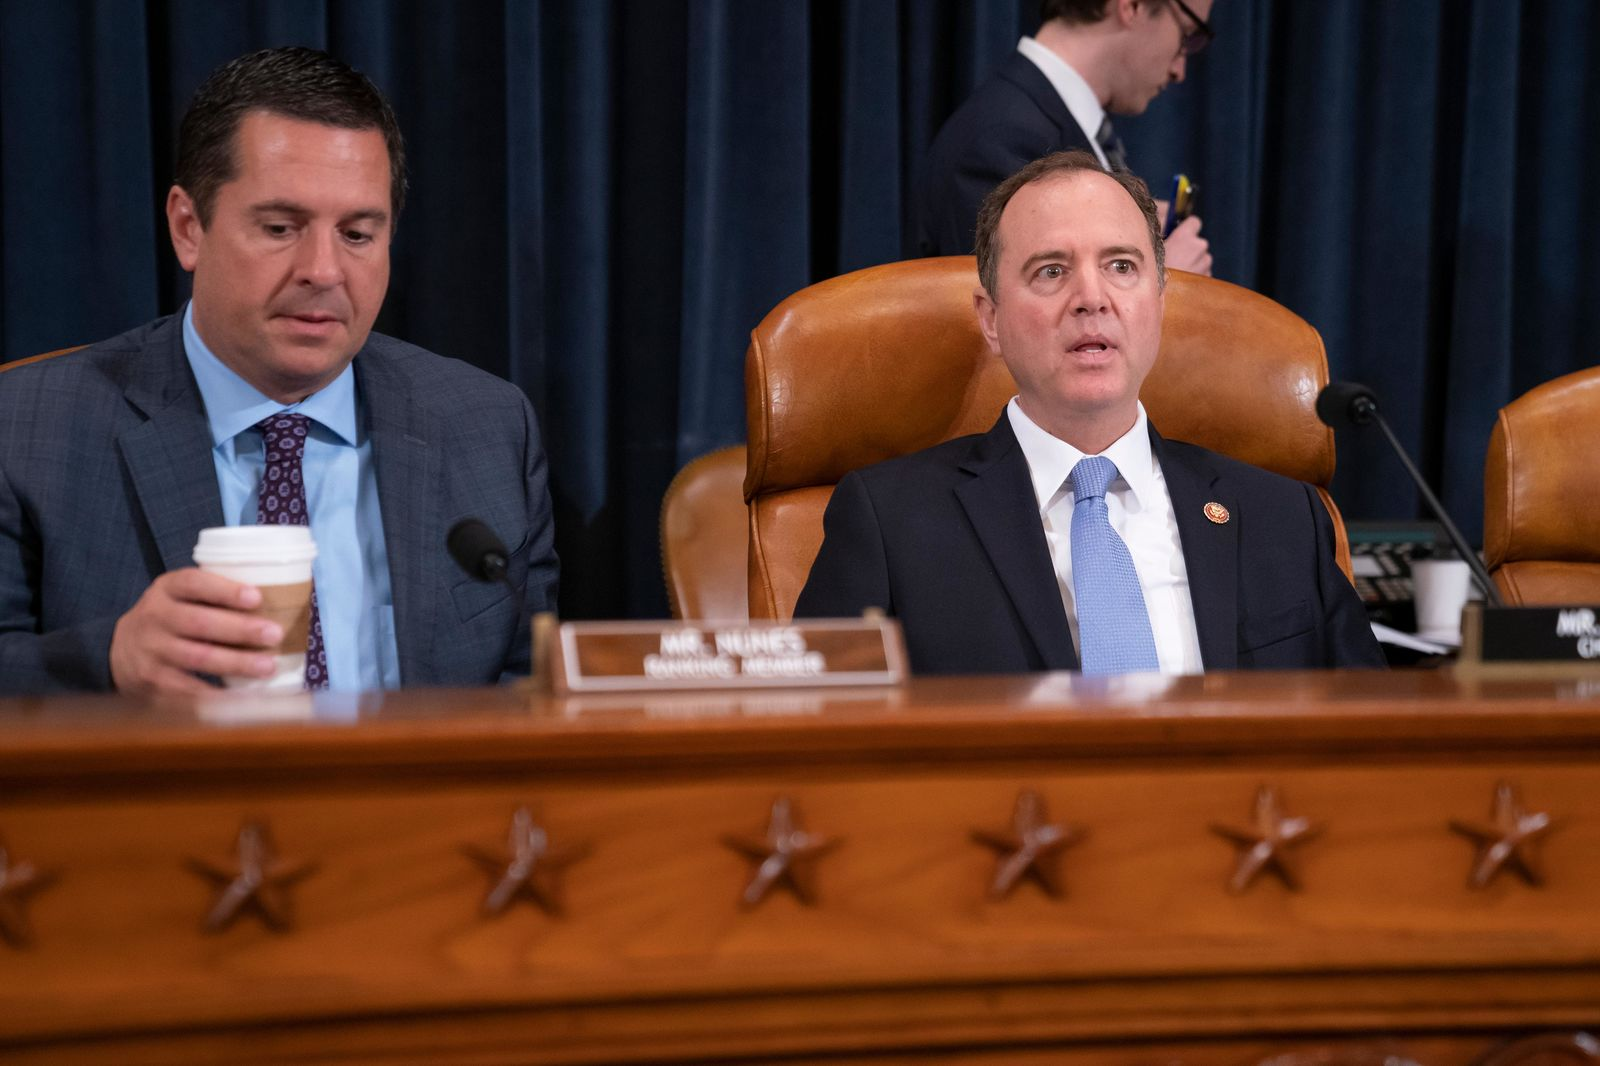 House Intelligence Committee Chairman Adam Schiff, D-Calif., right, joined by Rep. Devin Nunes, R-Calif, left, the ranking member, opens a hearing on politically motivated fake videos and manipulated media, on Capitol Hill in Washington, Thursday, June 13, 2019.  (AP Photo/J. Scott Applewhite)